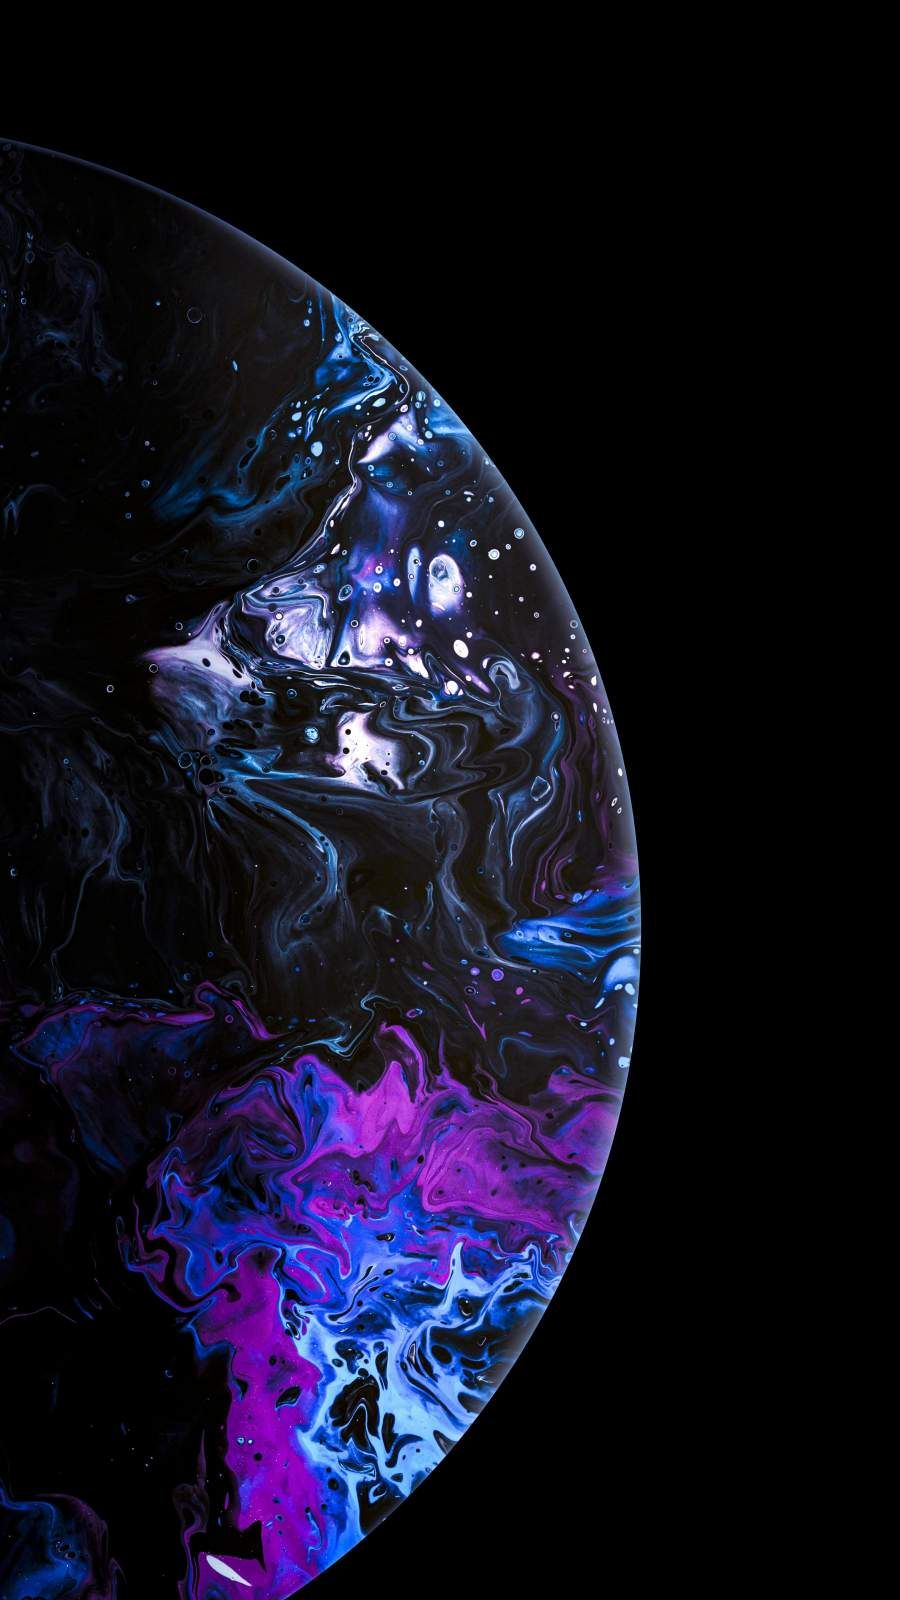 Iphone 11 Pro Wallpaper Apple Wallpaper Iphone Hd Phone